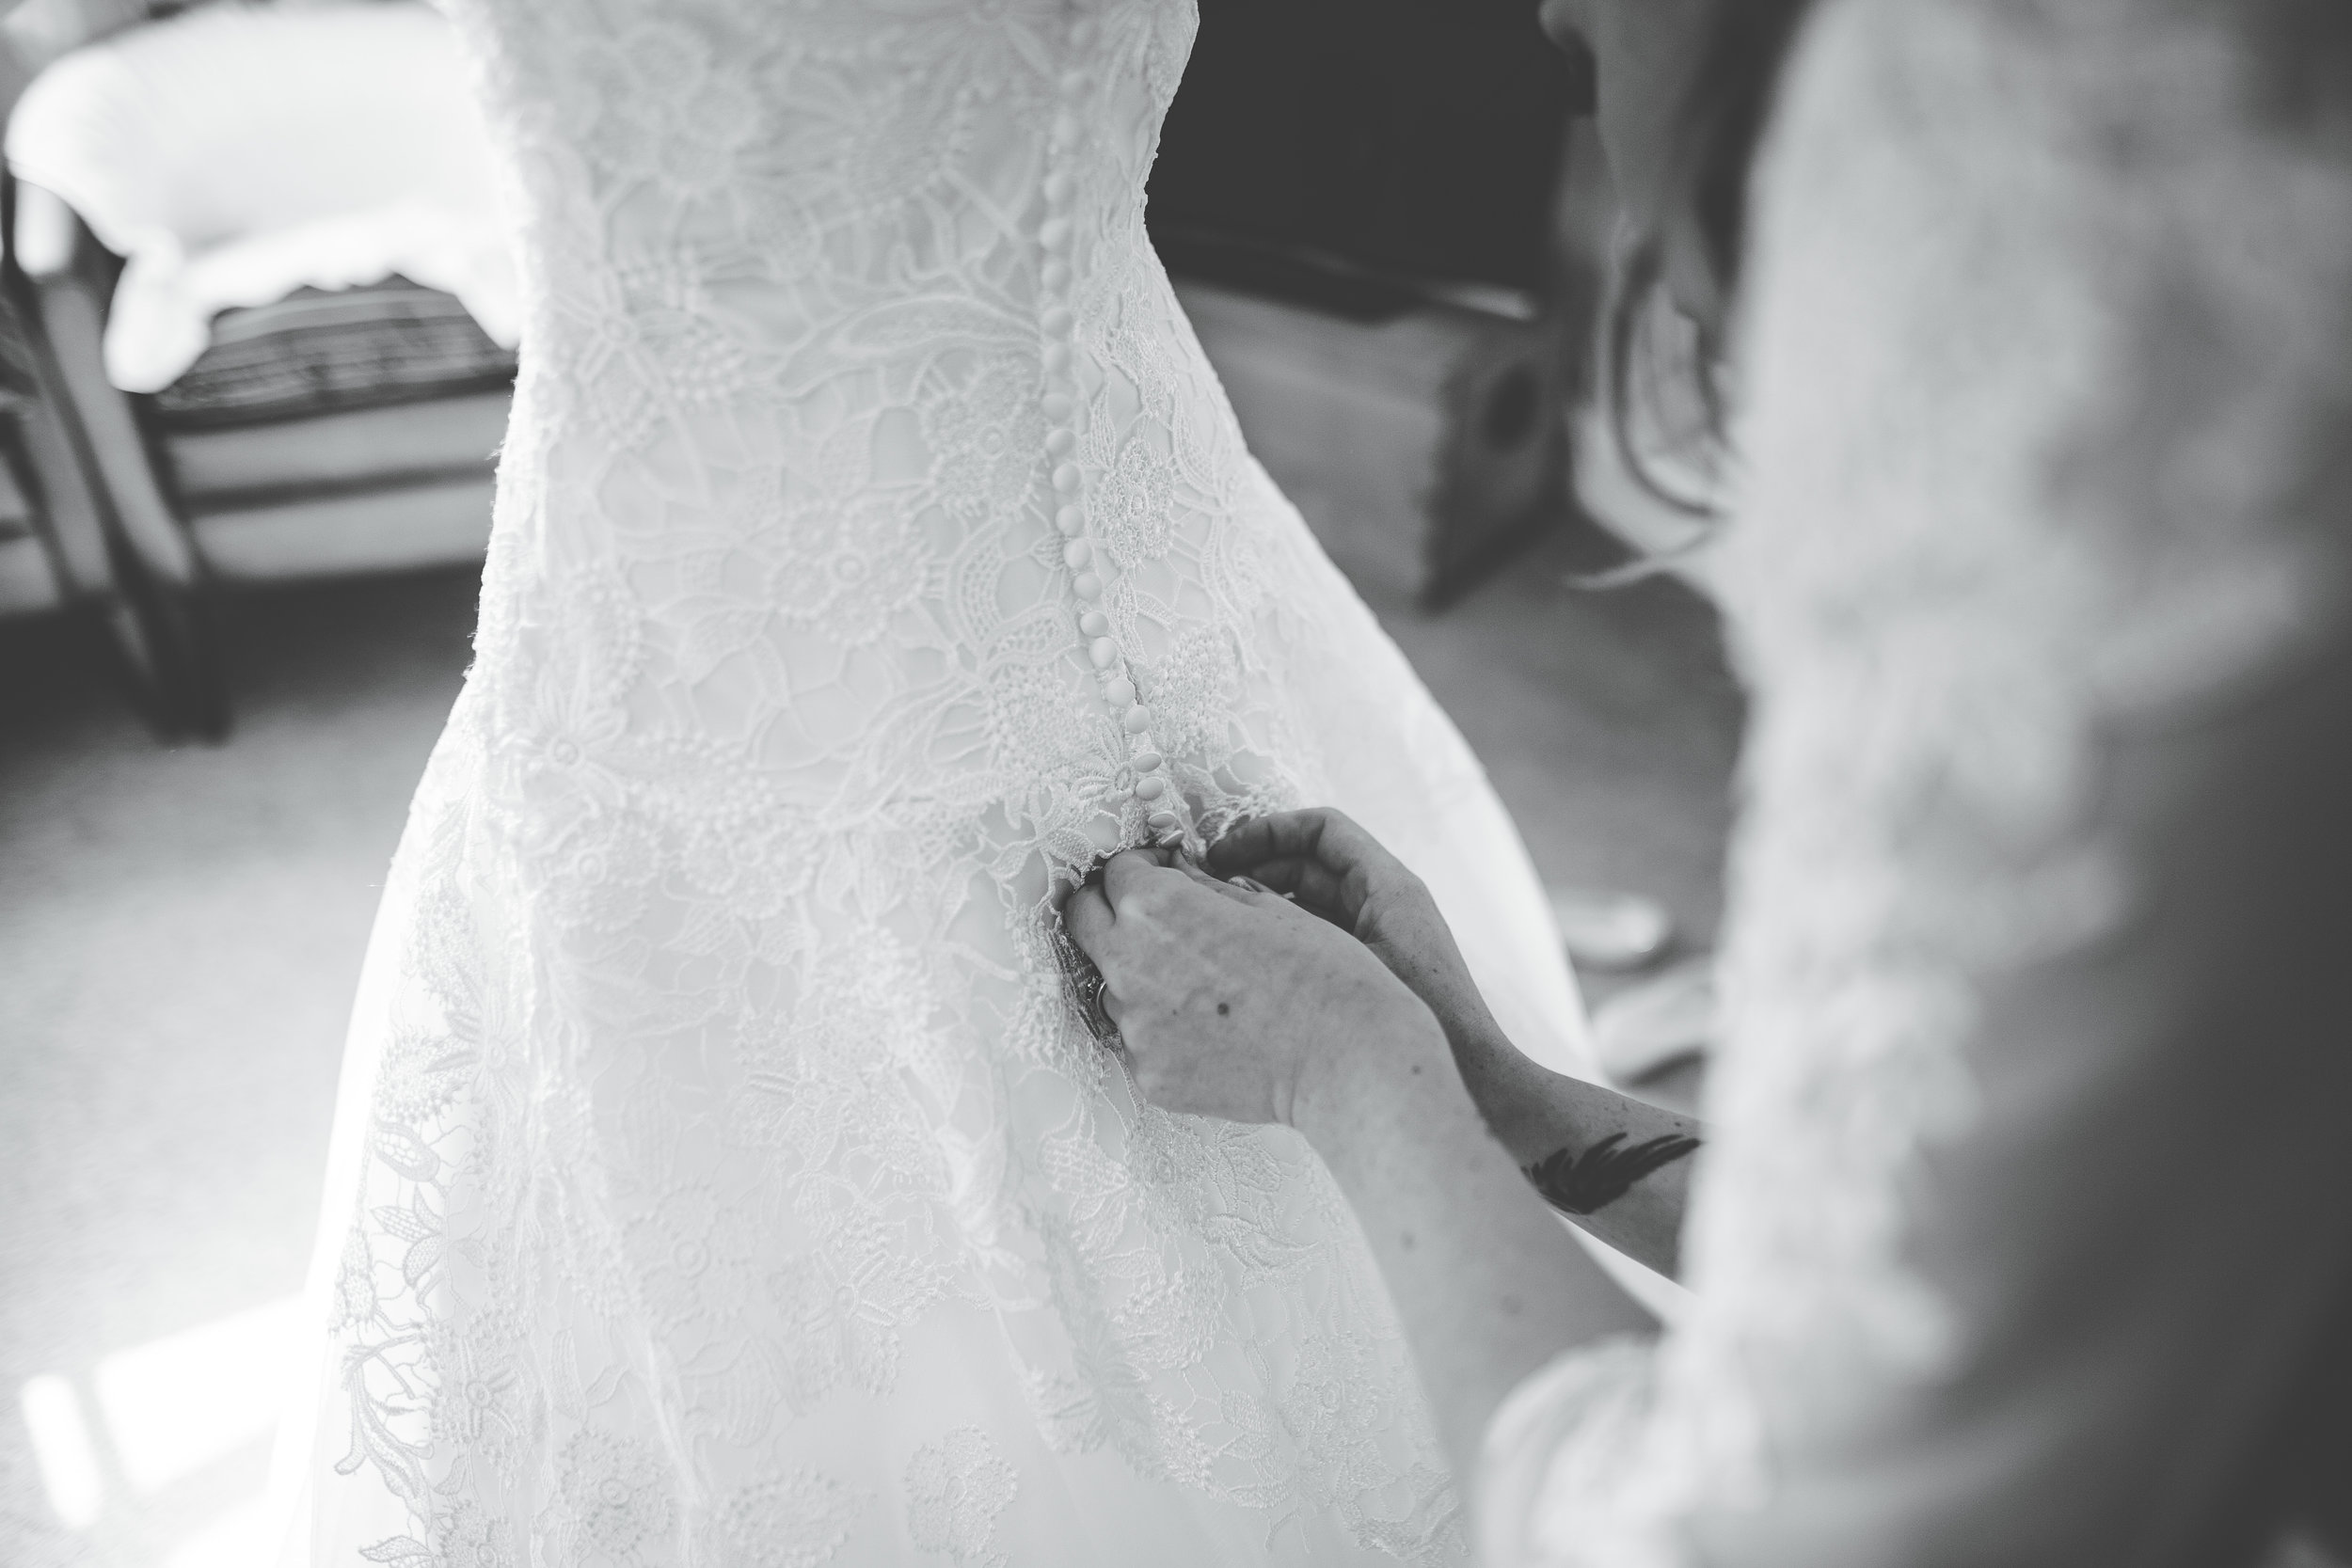 dress being fastened. - black and white wedding photography